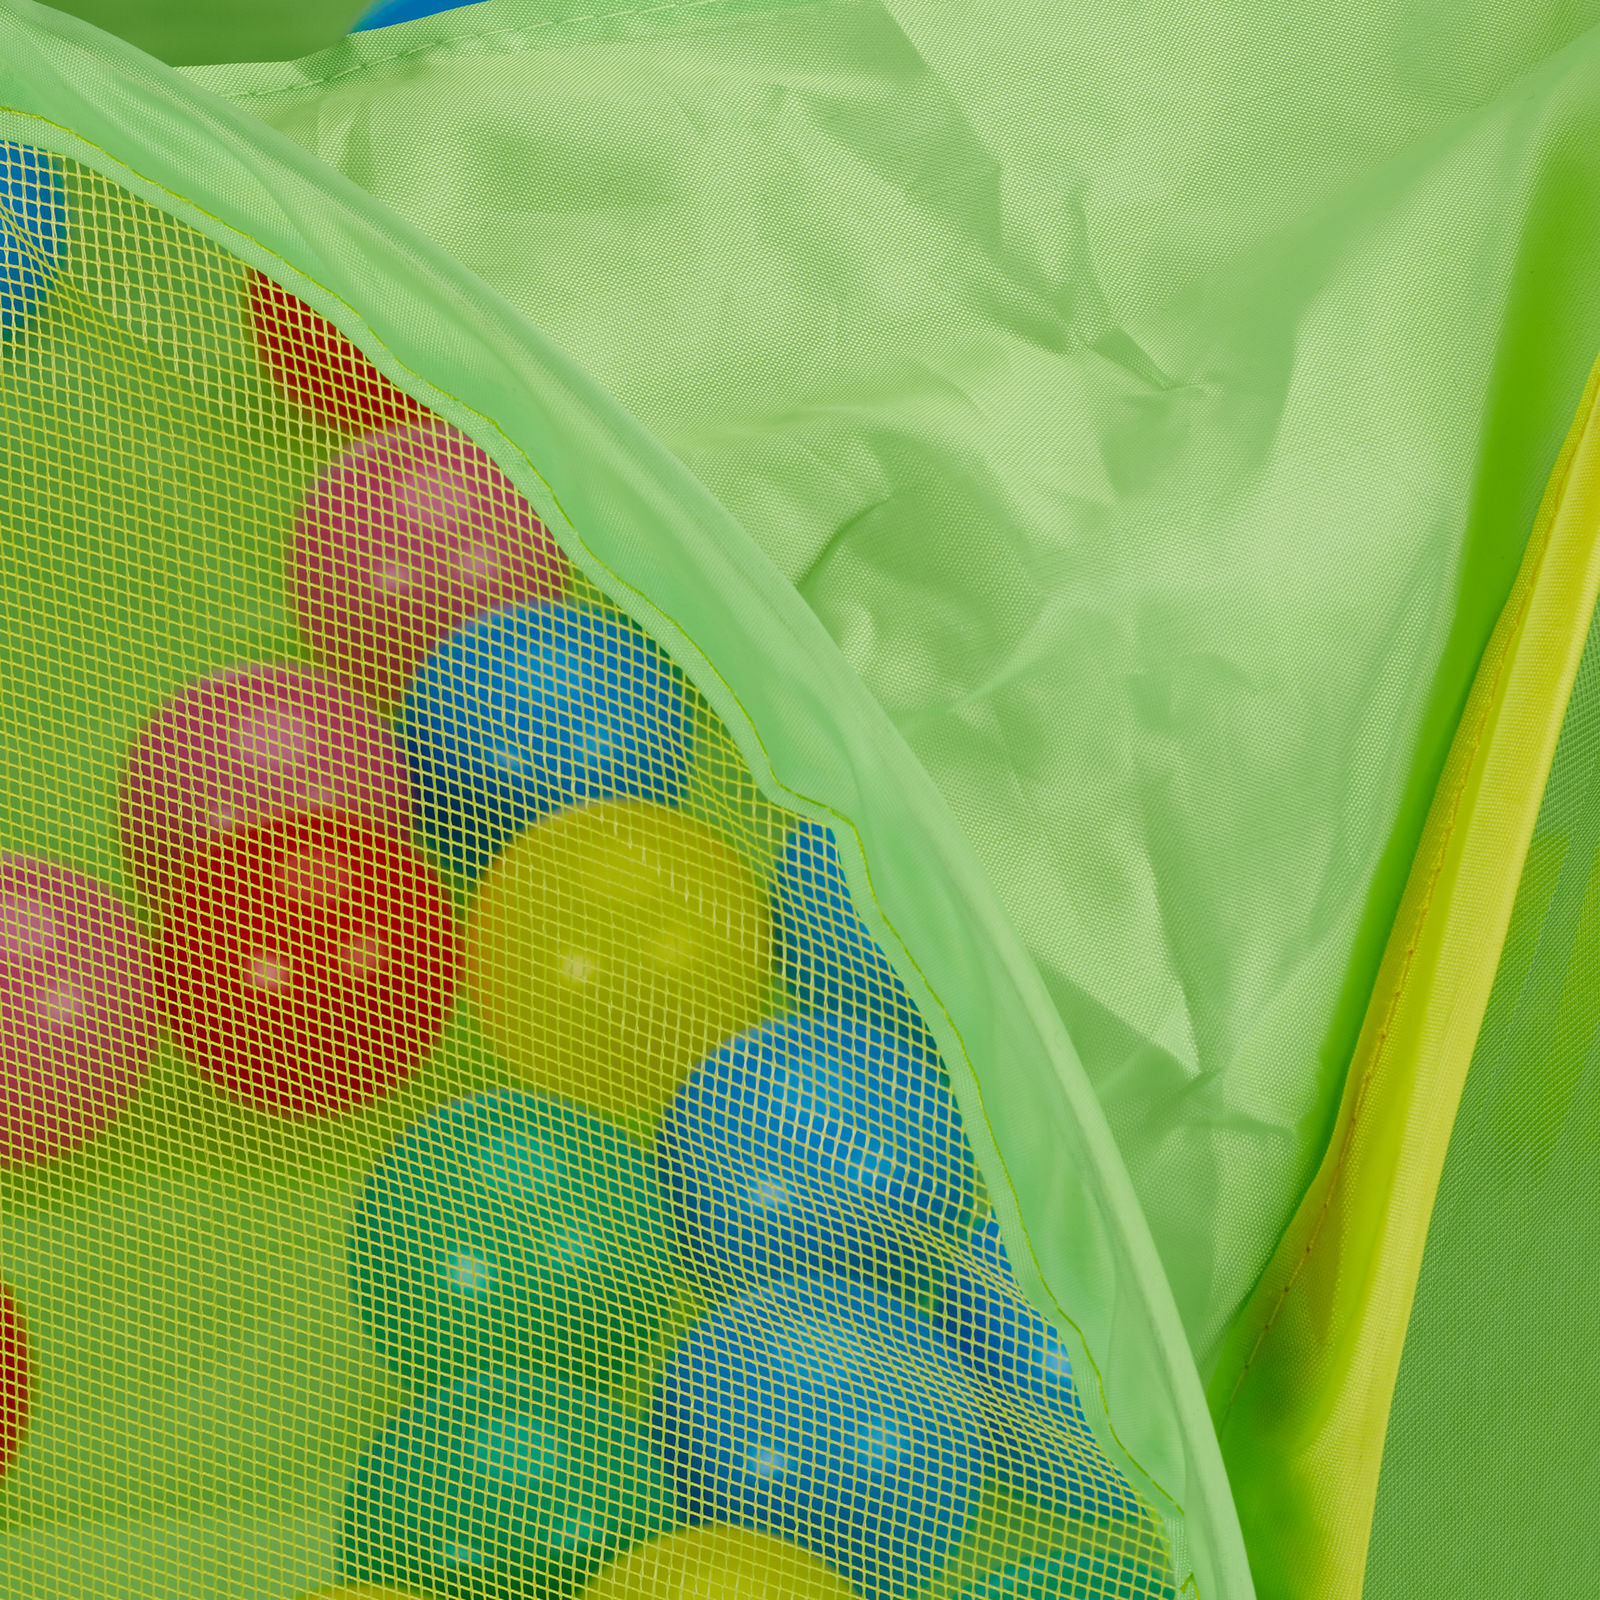 Baby Ball Pool, Square Pop Up Toddler Ball Pit with 50 BPA Free Balls, 6 Months